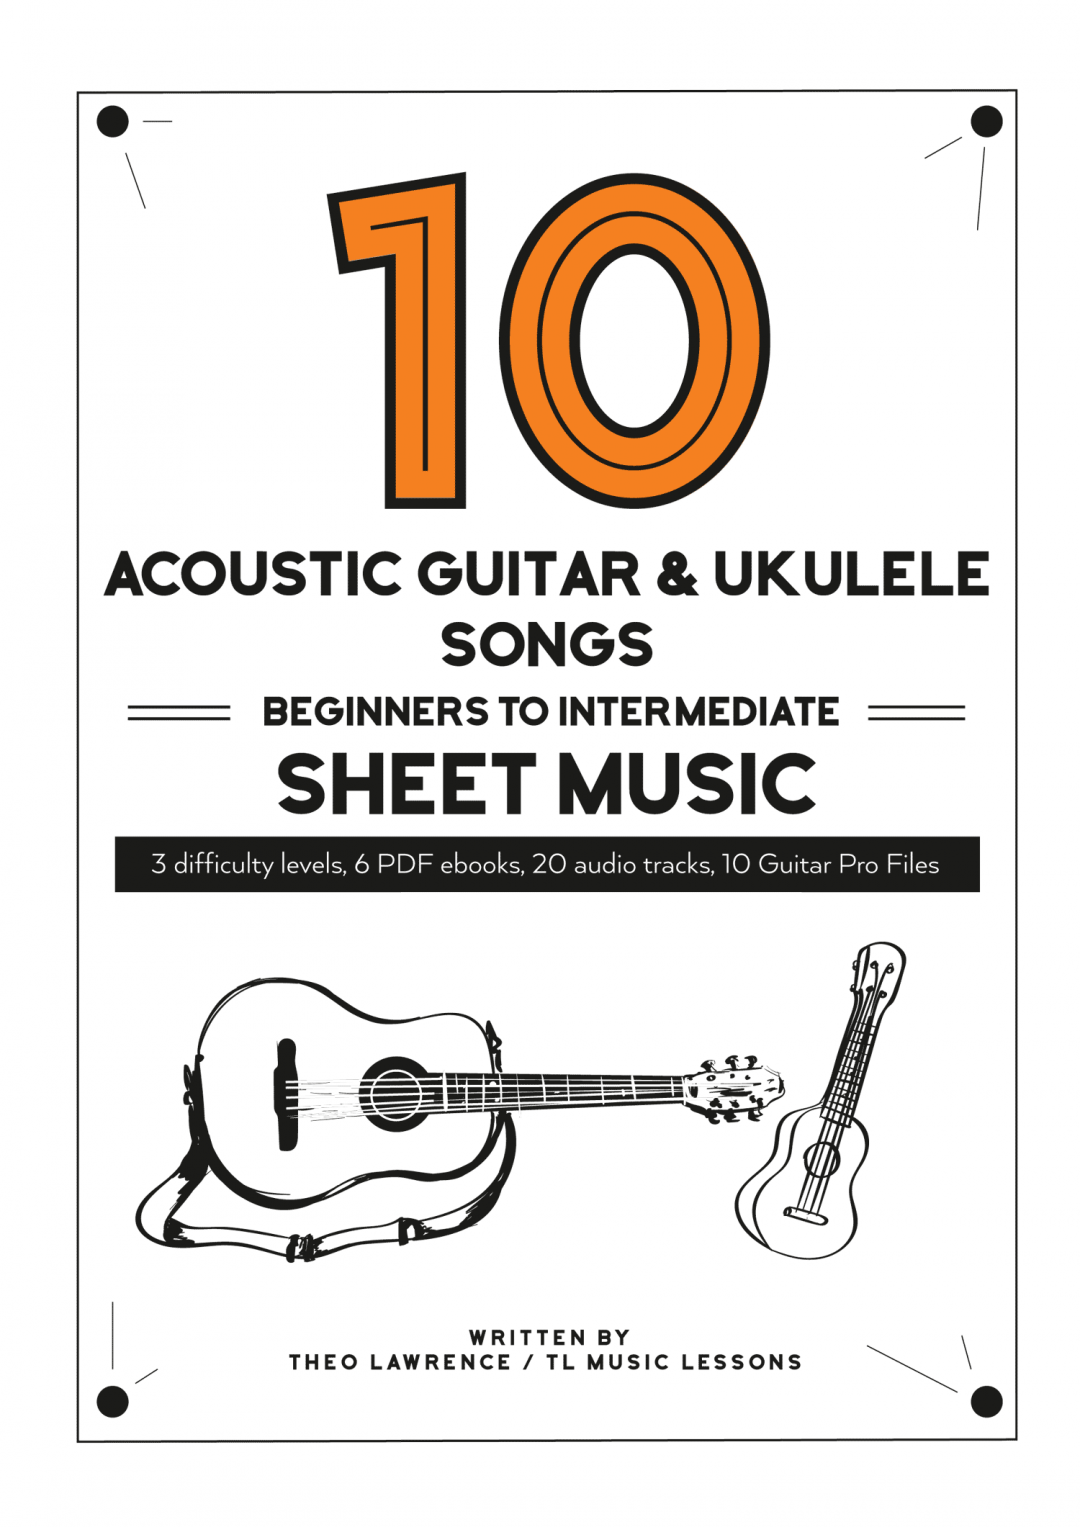 Premium) – 10 Acoustic Guitar & Ukulele Songs – Beginners to